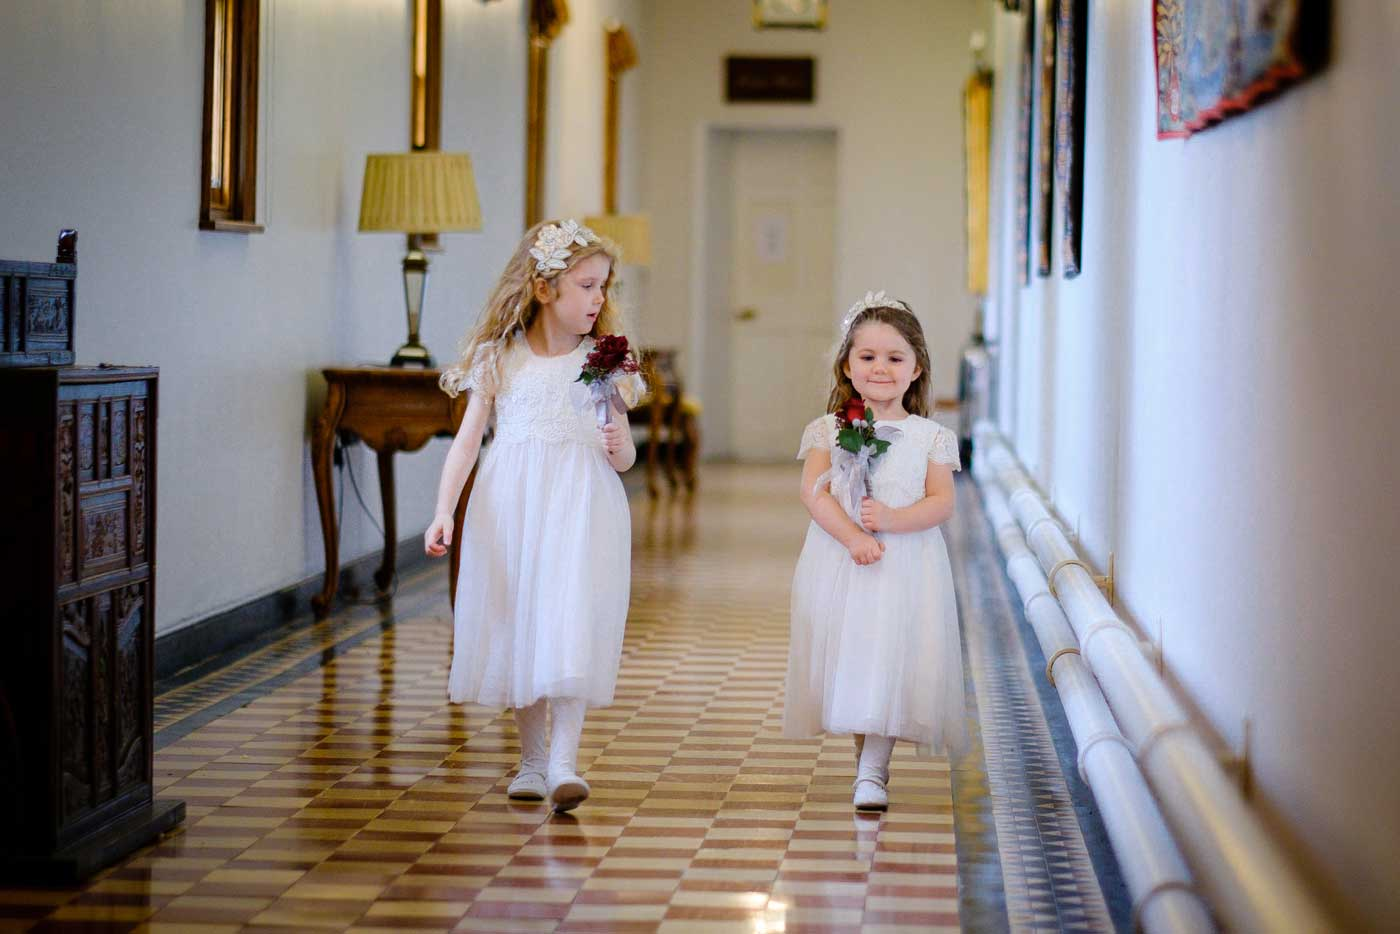 Flower girls on the way to the wedding ceremony at Stanbrook Abby by Stanbrook Abbey wedding photographer Clive Blair Photography